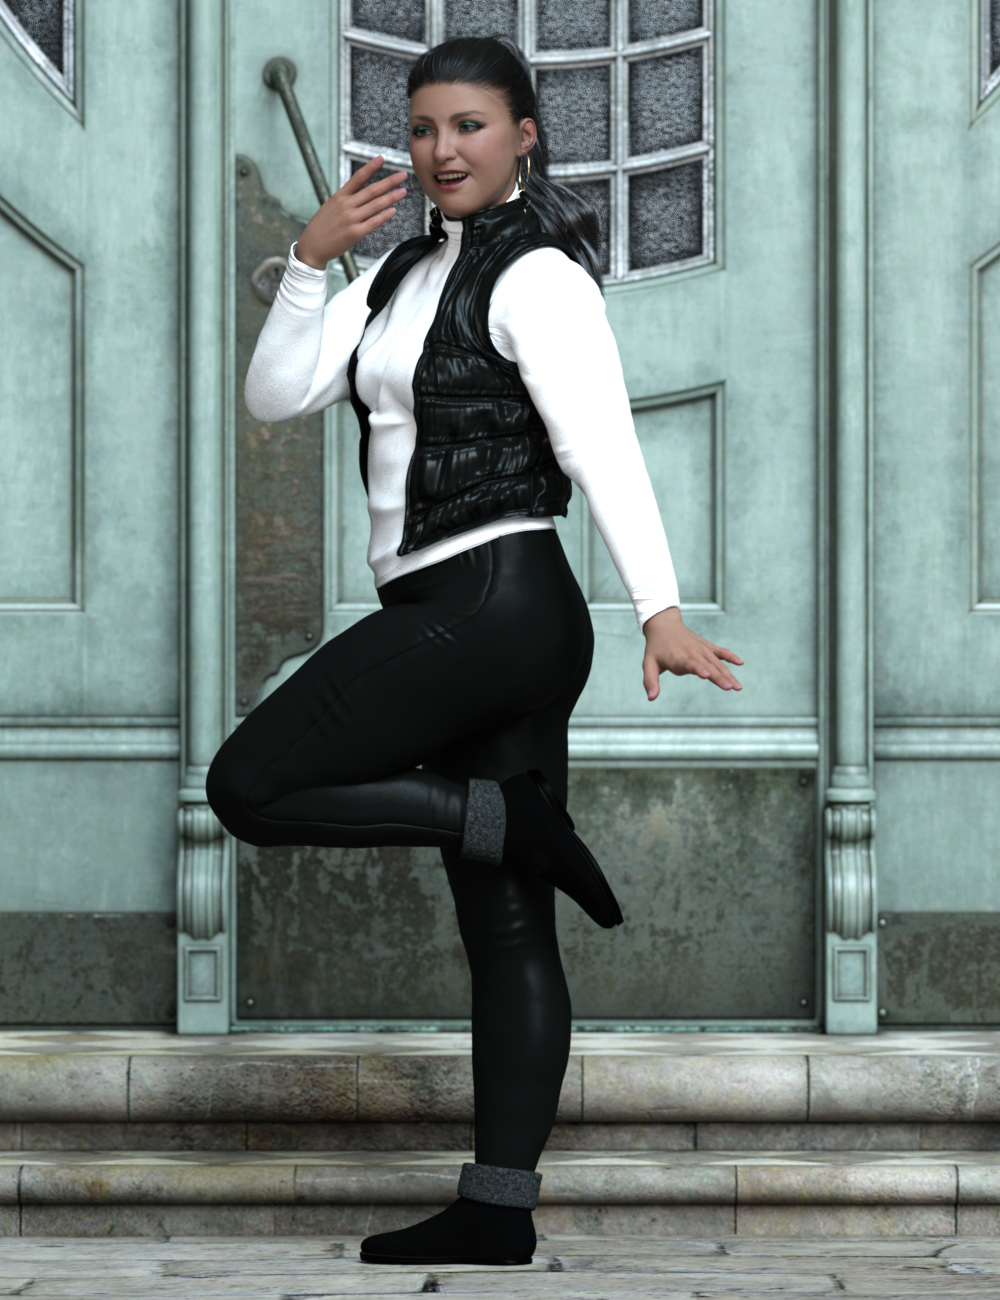 Brooke and Beautiful Poses for Brooke 8.1 by: Ensary, 3D Models by Daz 3D